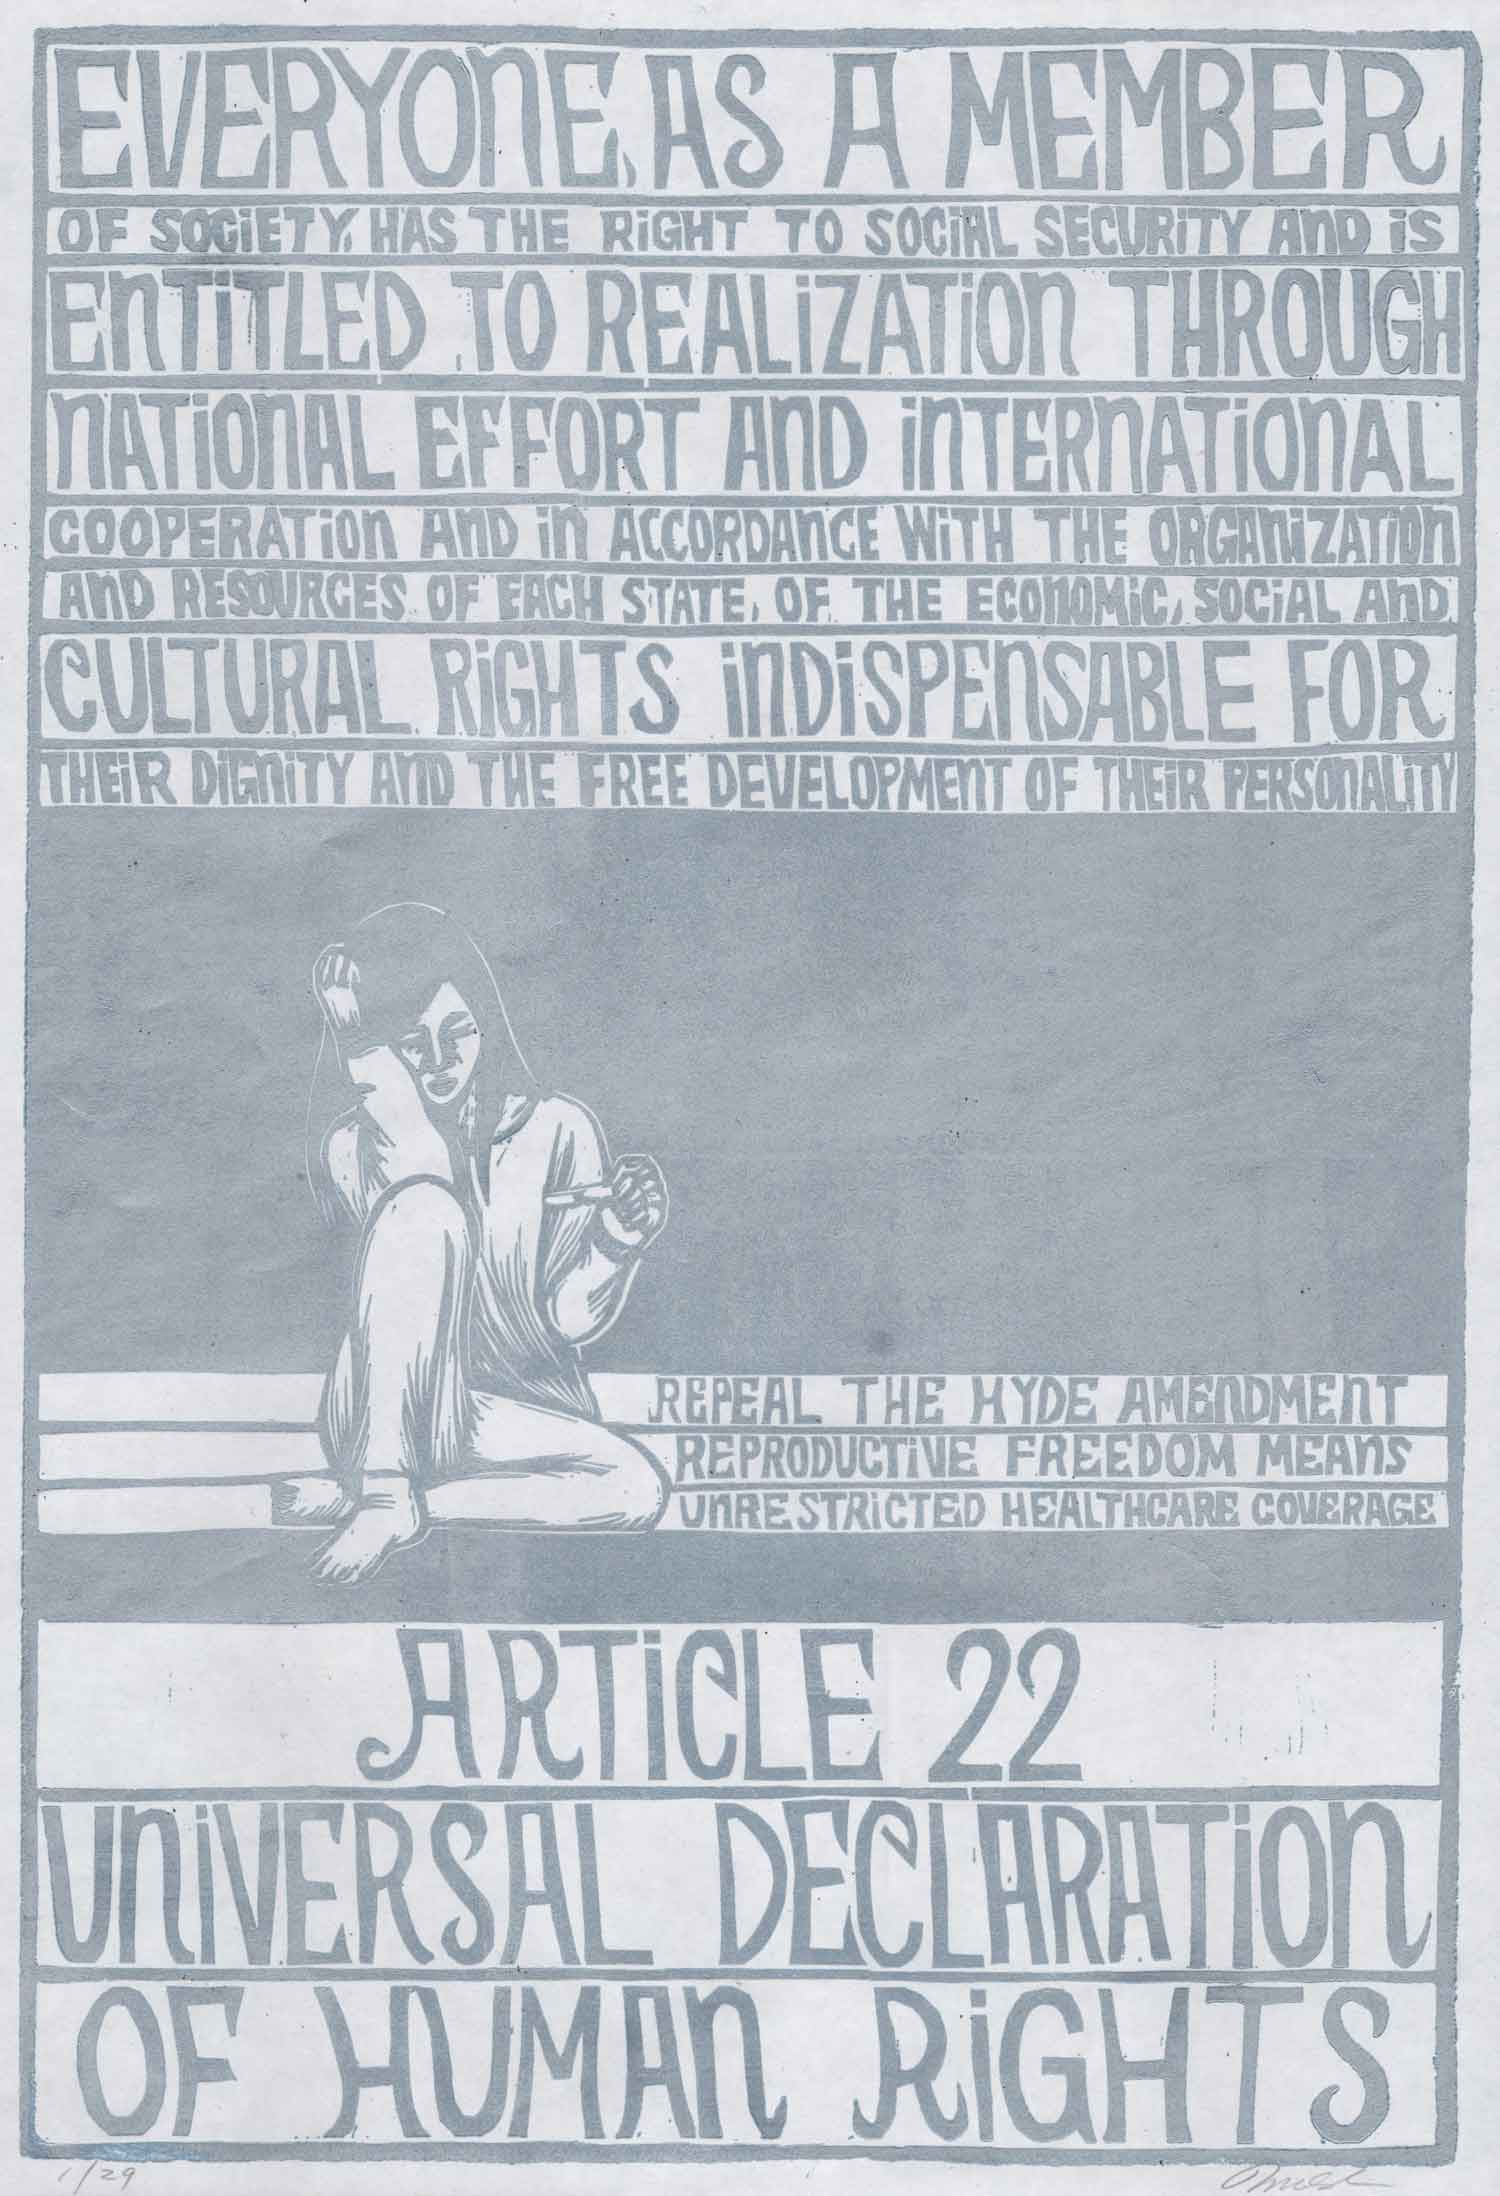 article 22 udhr universal declaration of human rights